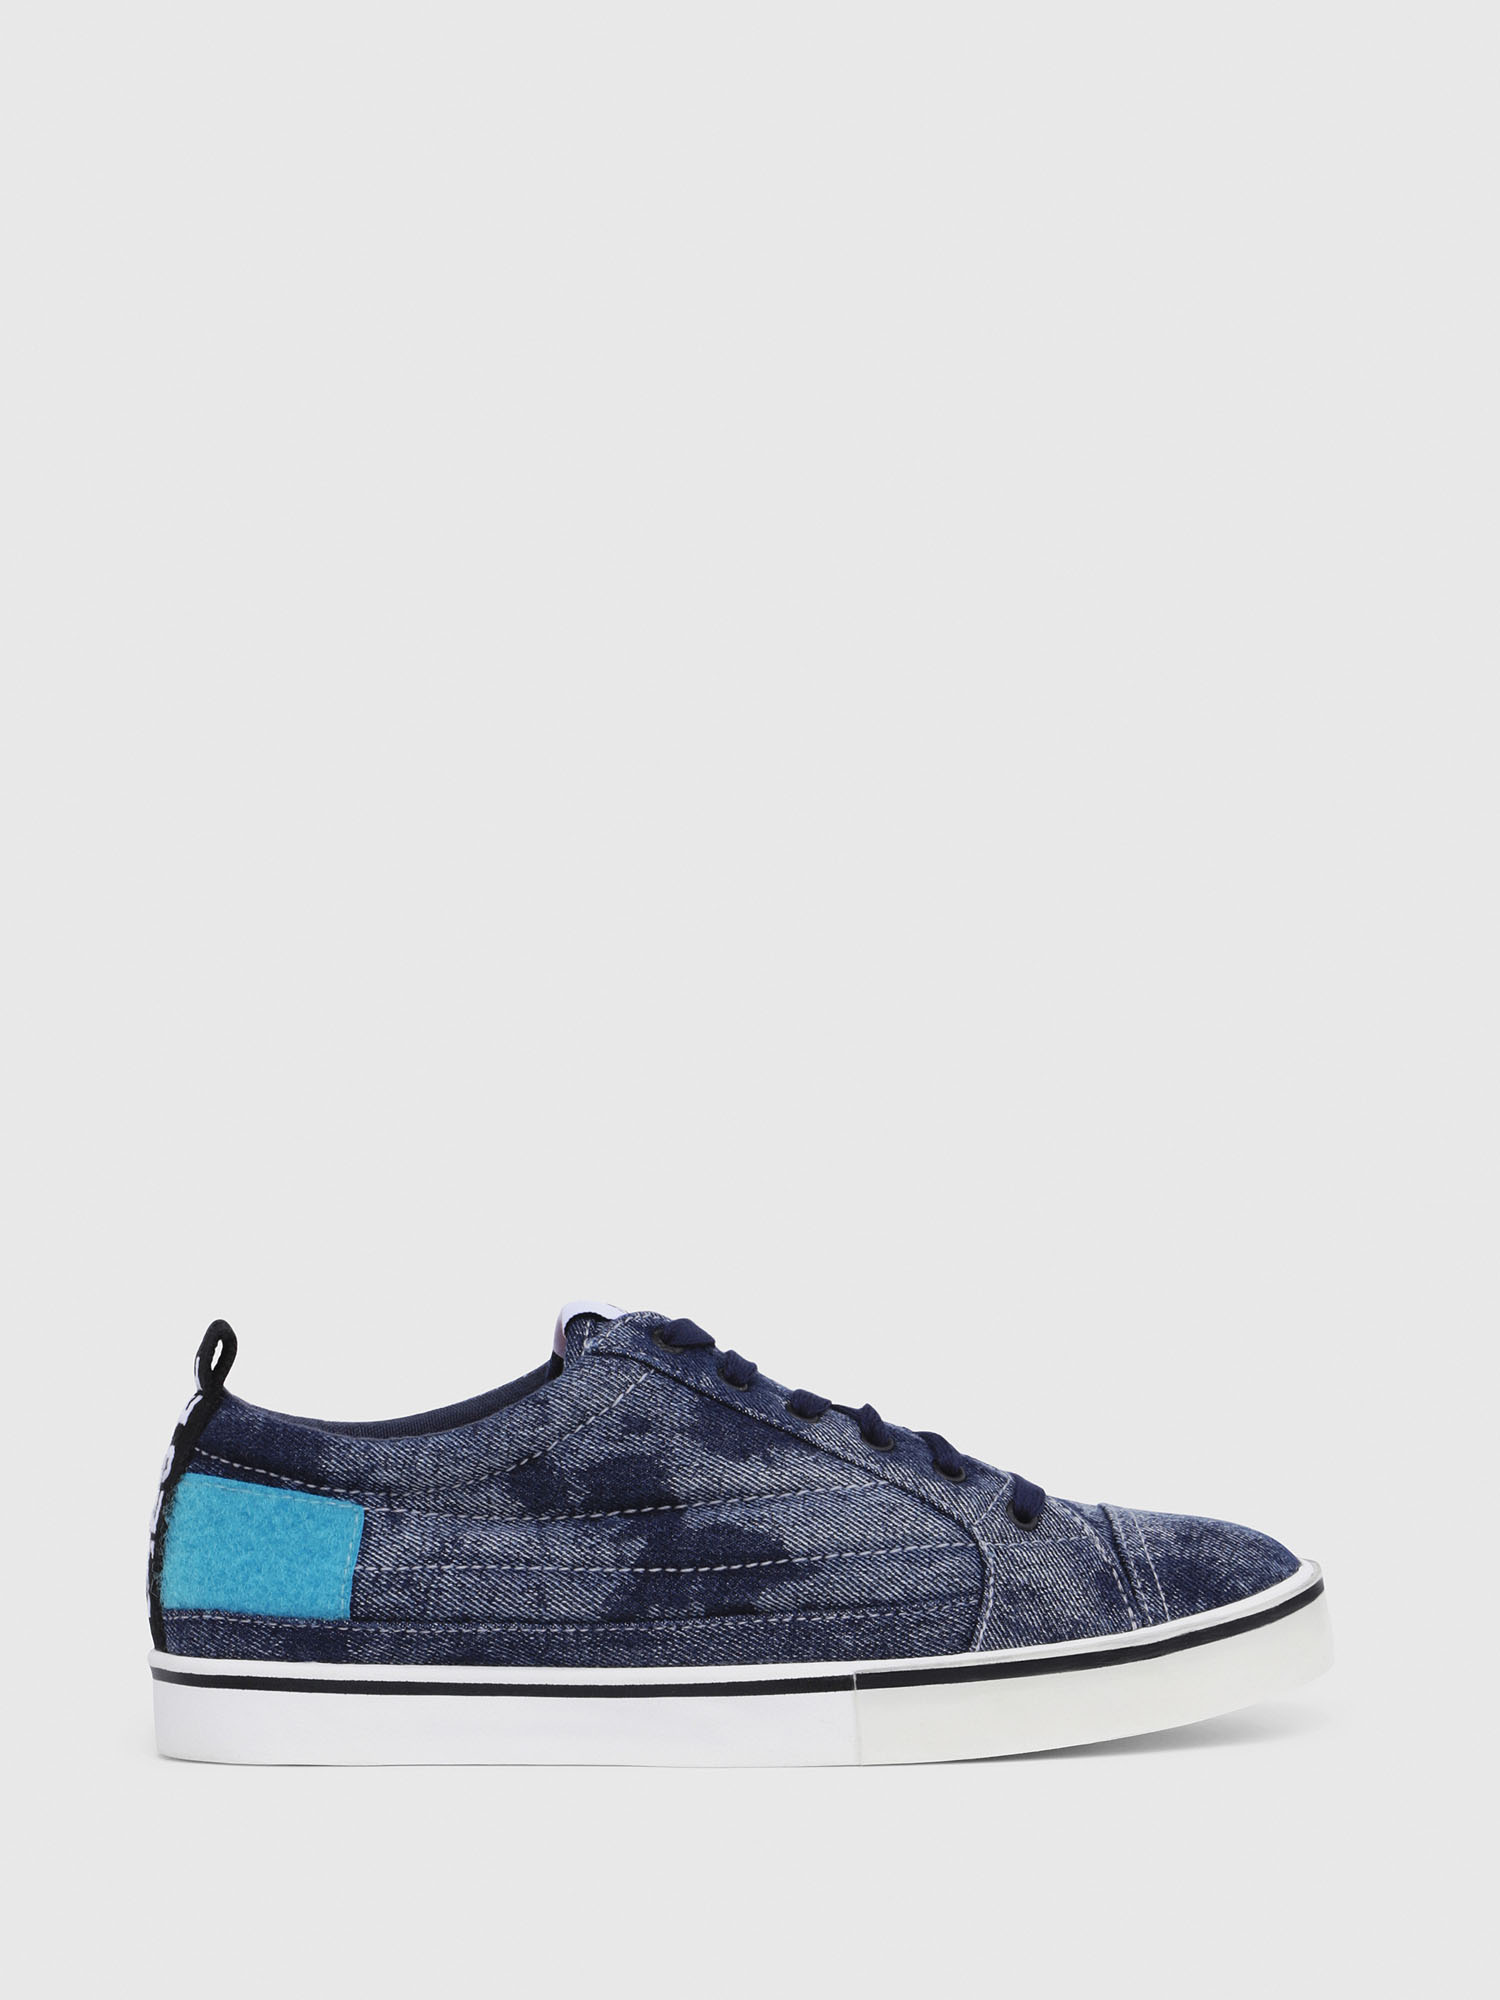 Diesel - D-VELOWS LOW PATCH,  - Sneakers - Image 1